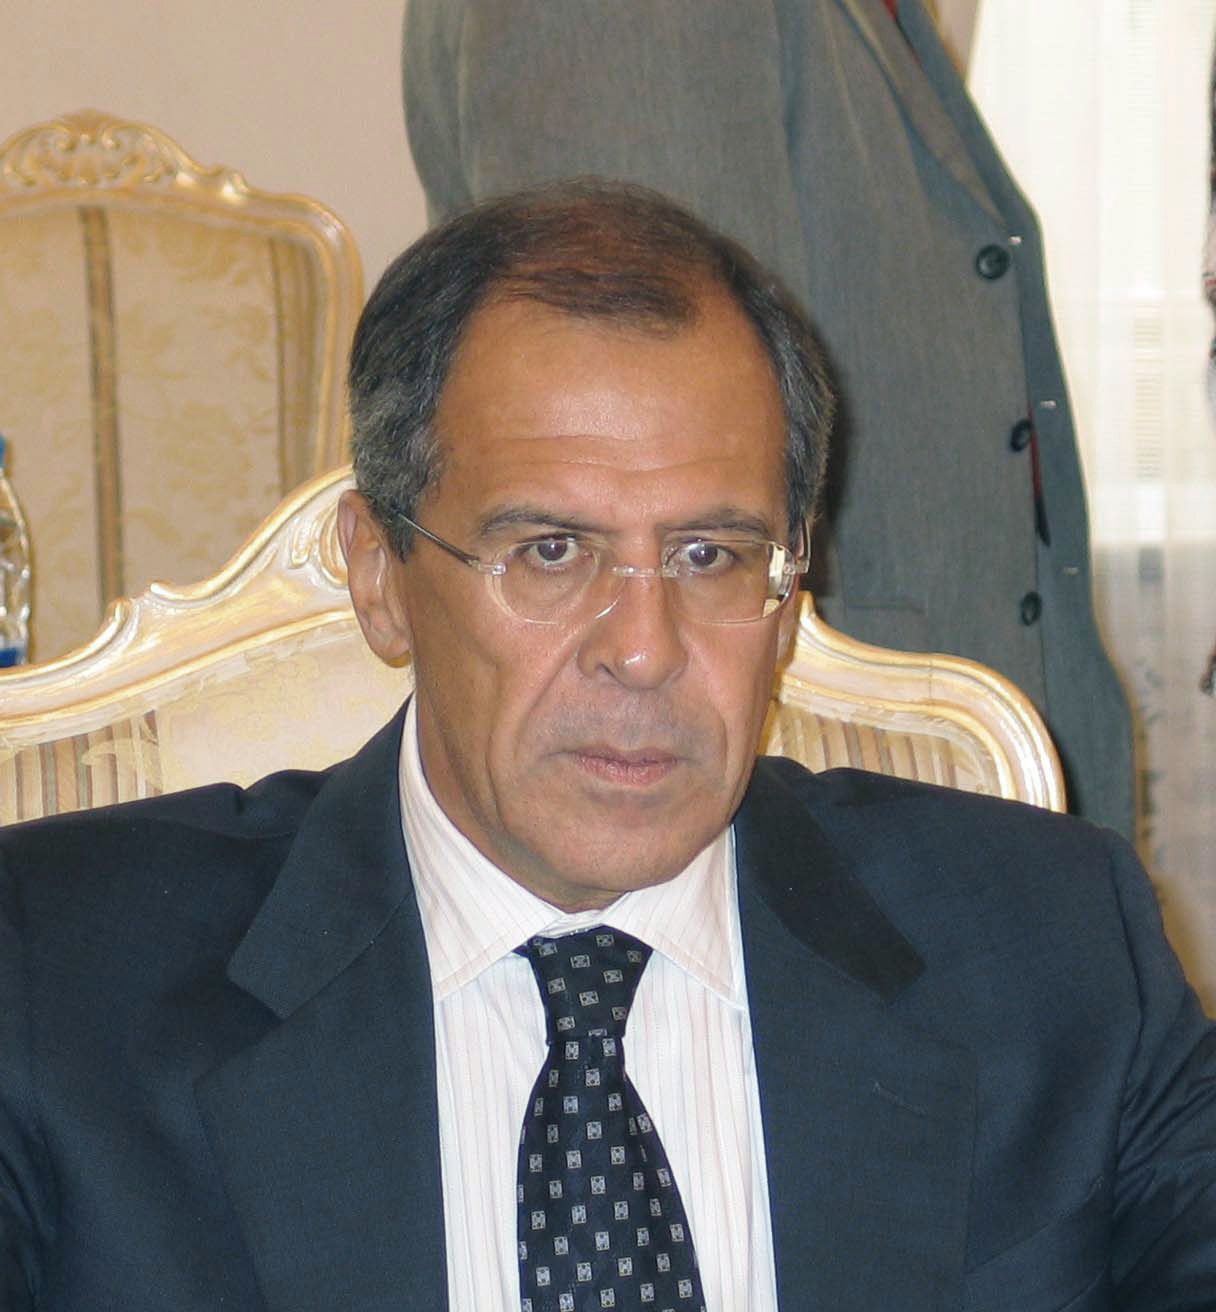 Russia's view on Syria will not change - Lavrov